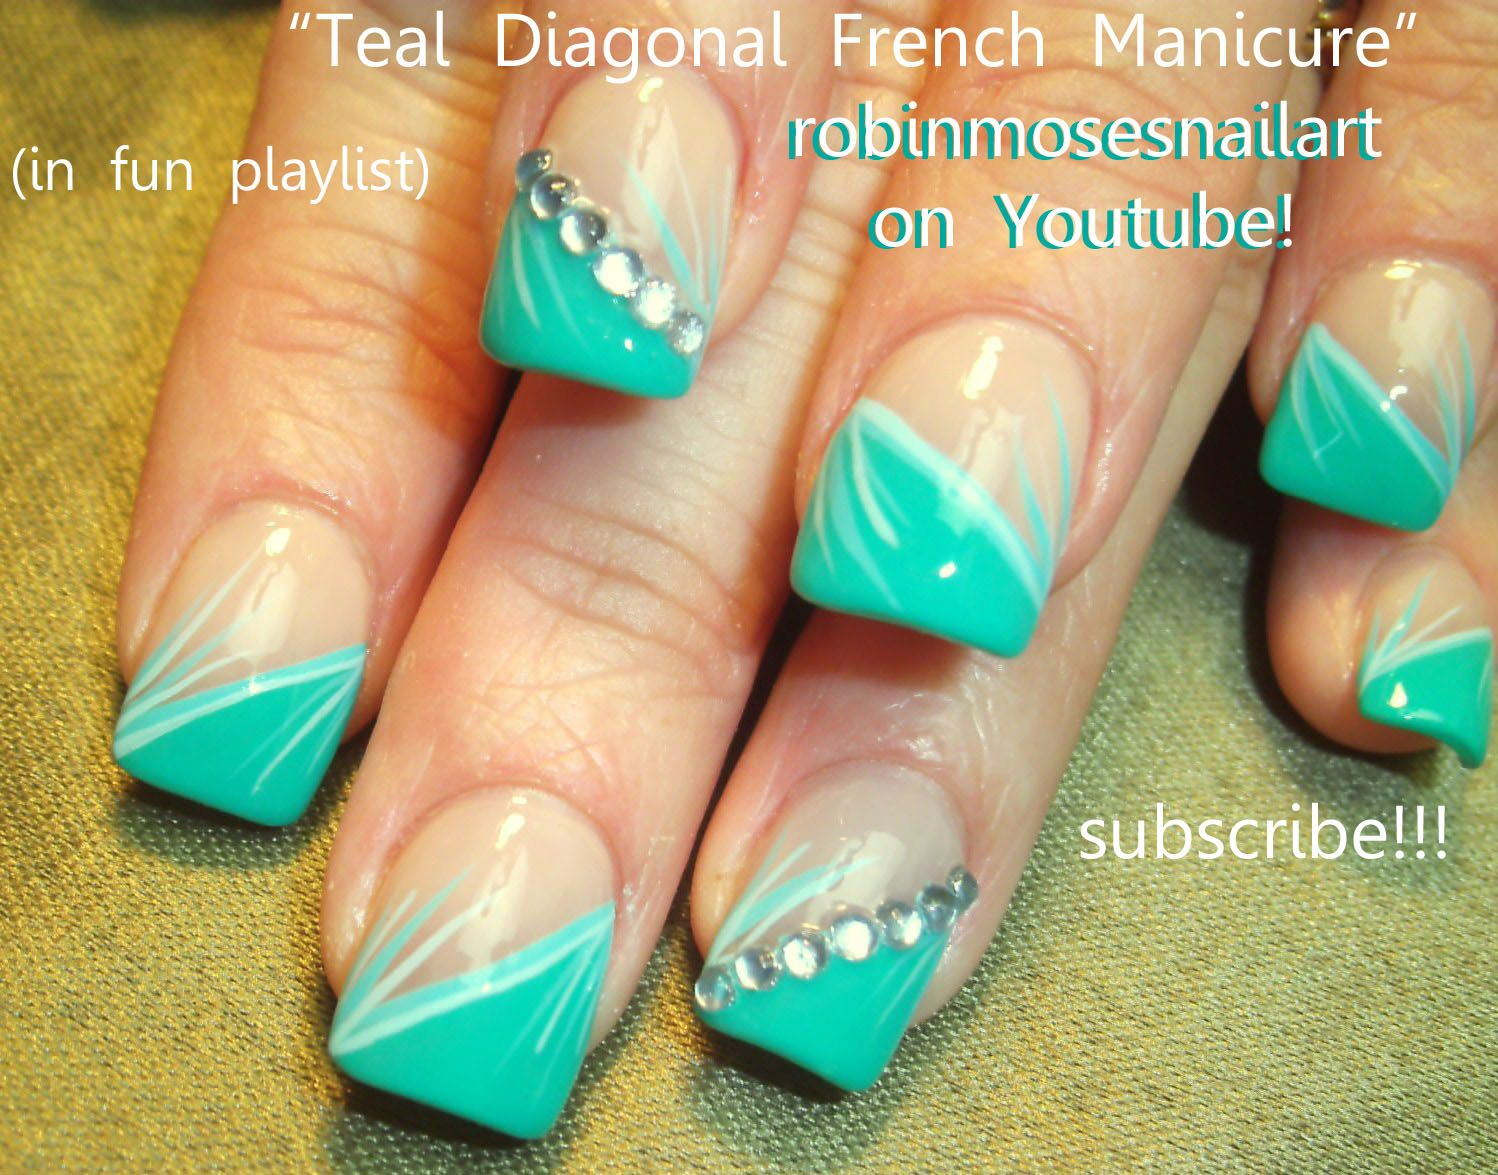 French Manicure Designs | Teal Diagonal French Manicure nail art 770 ...